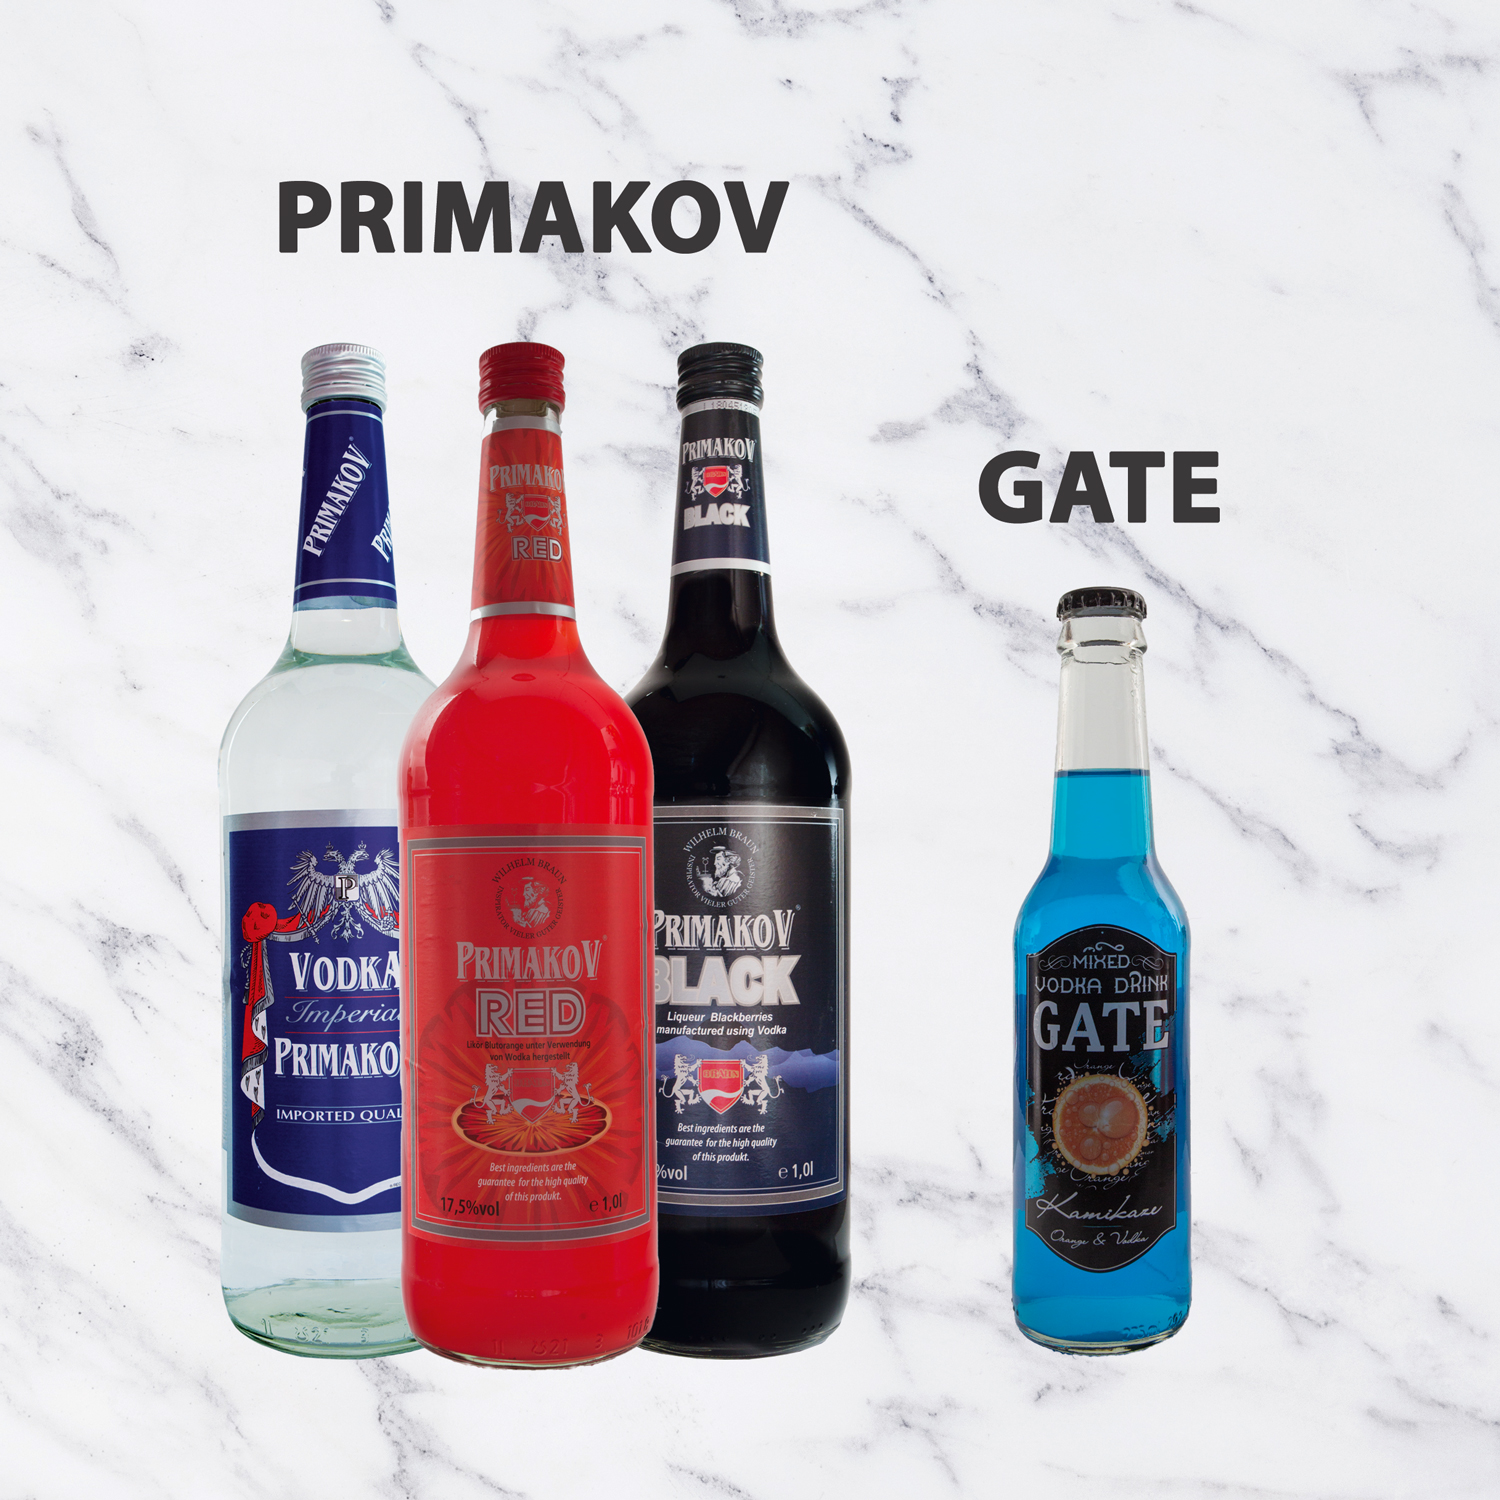 Primakov Wodka & Gate